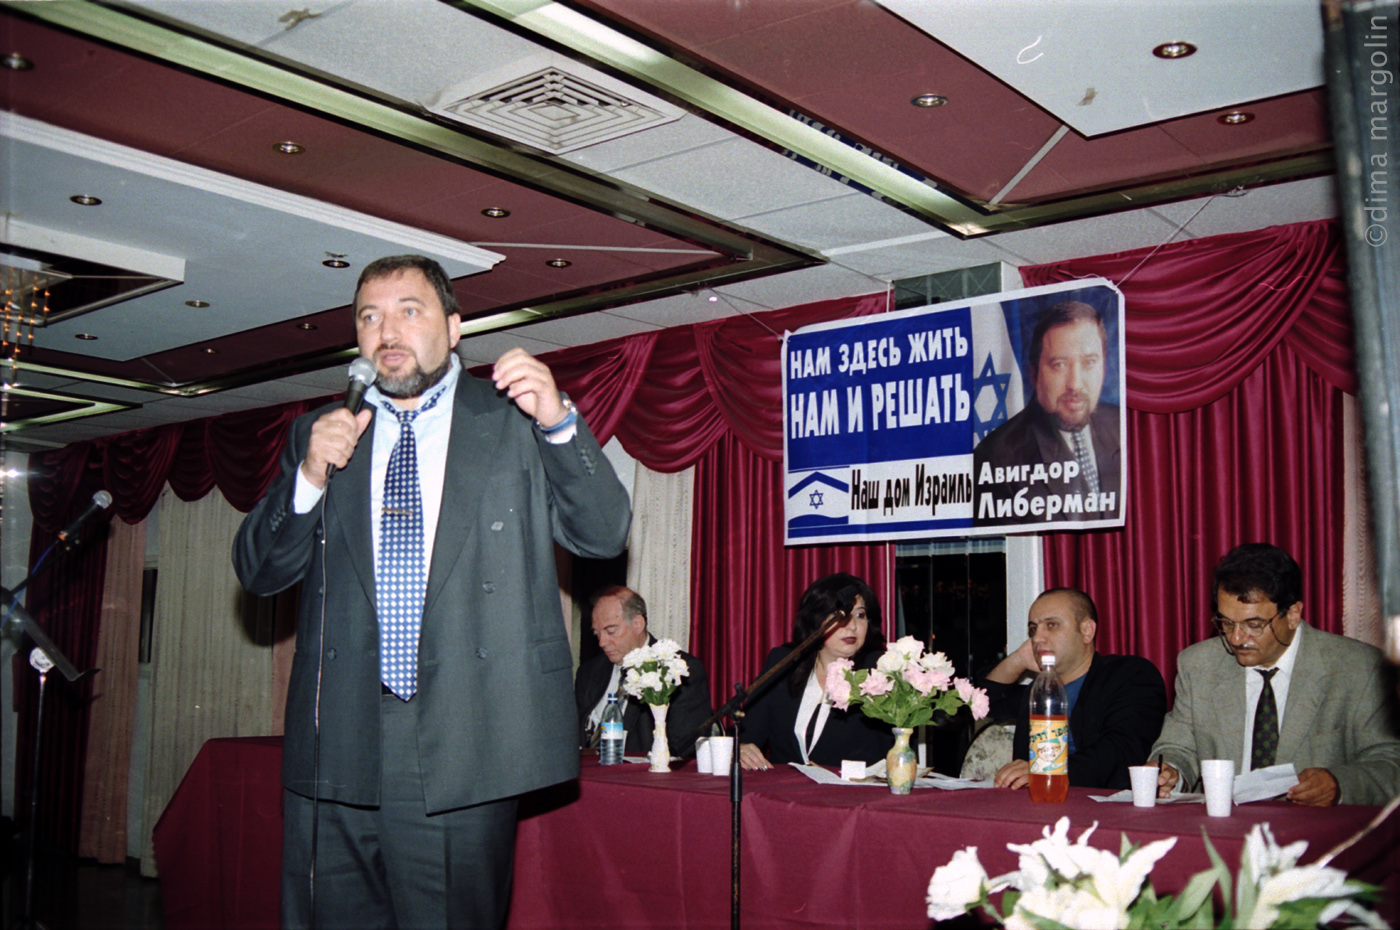 Liberman at Haifa 1998